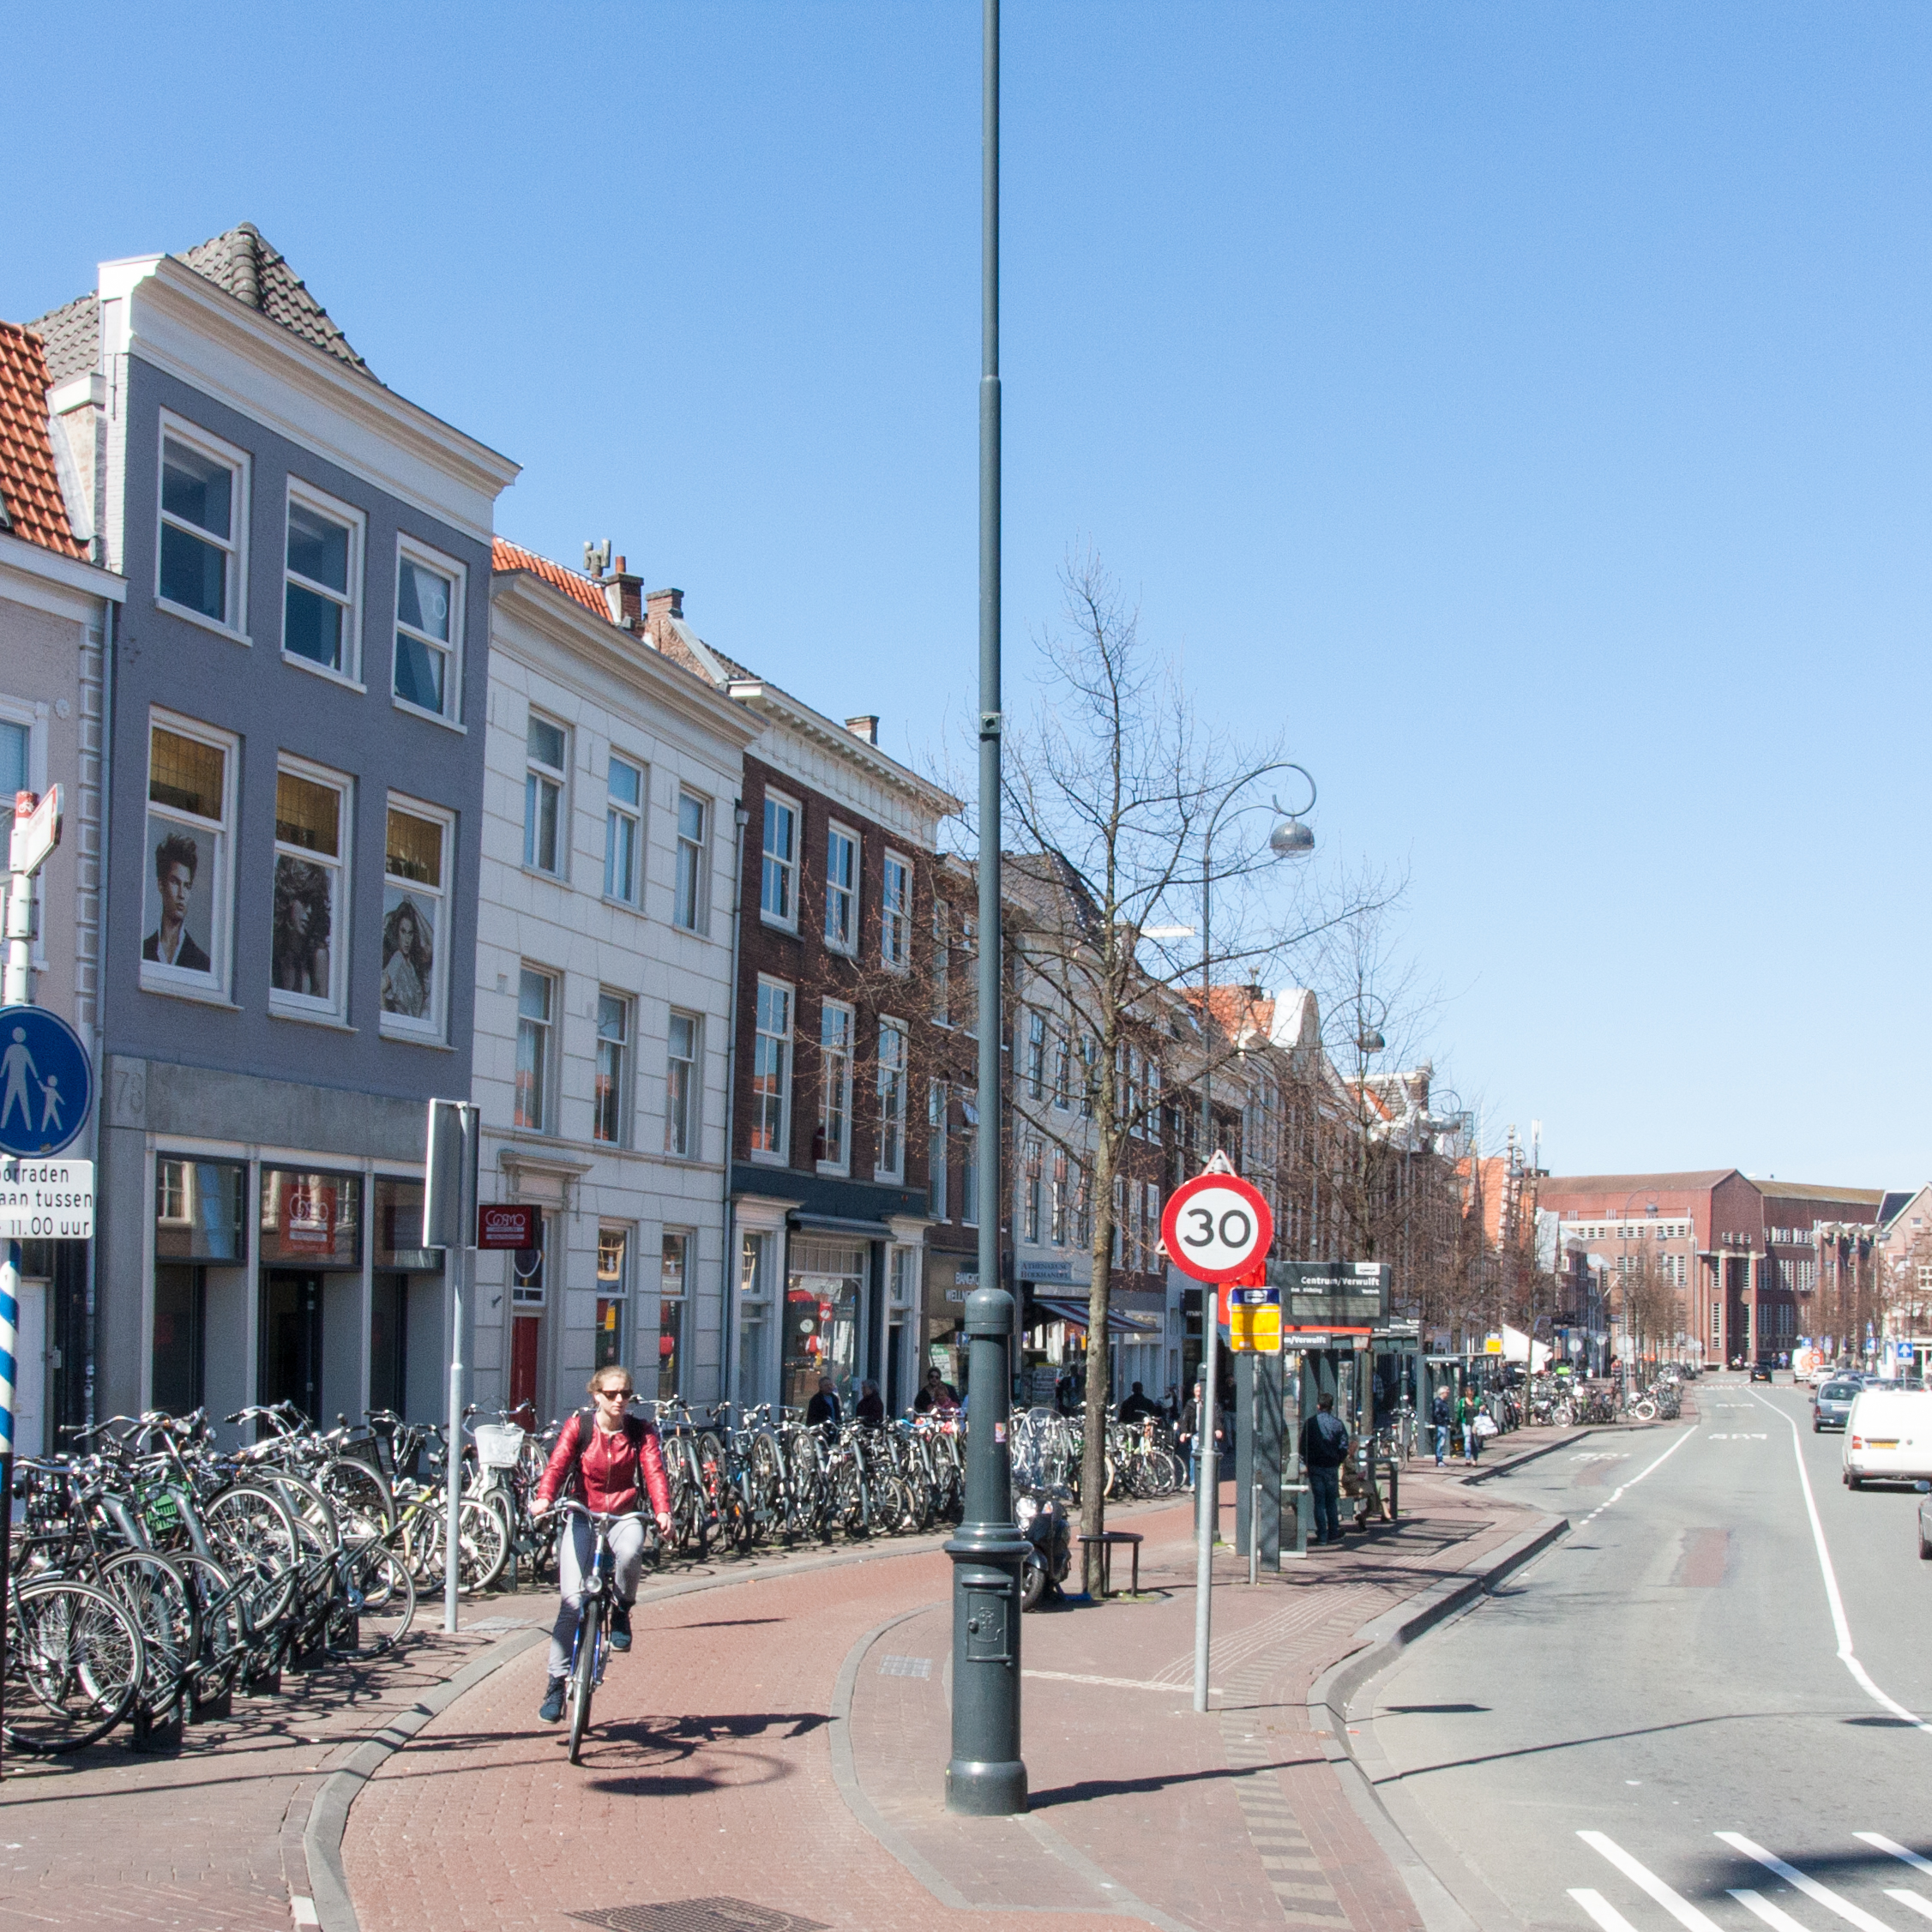 A street in the Haarlem Centrumwe frequently ride to get to the Haarlem Centraal Station which hasvery busy bicycle and pedestrian traffic at the rush hours.